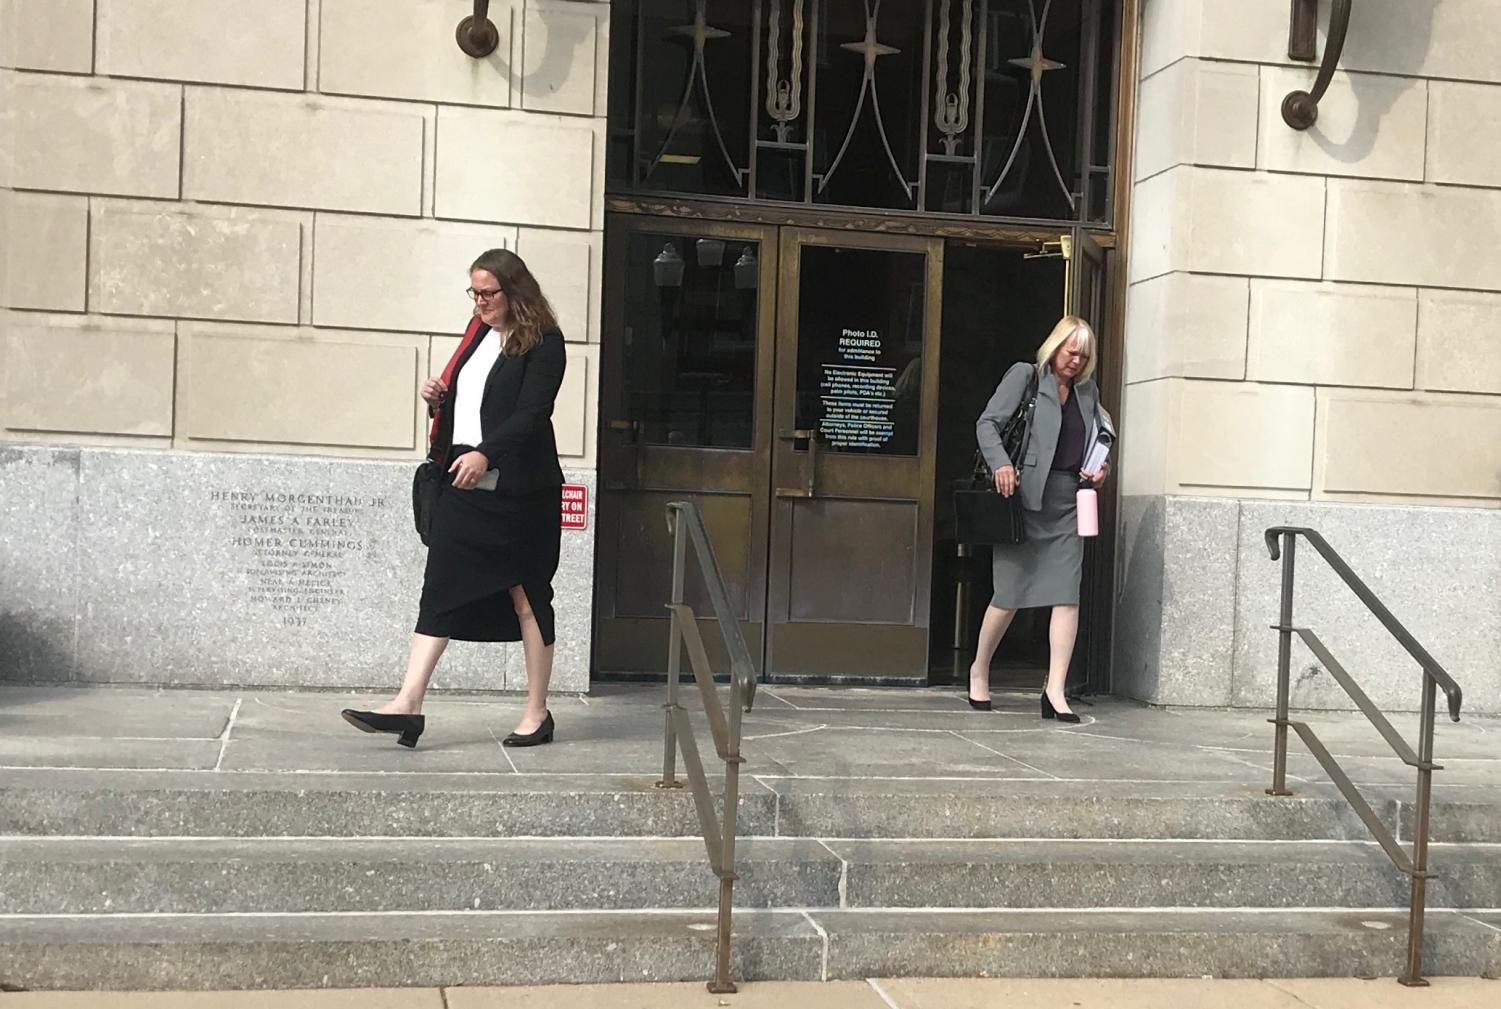 Members of Brendt Christensen's defense team, Elisabeth Pollock (left) and Julie Brain (right) walk out of the courtroom on Monday. In order to avoid the death penalty for Christensen, the defense has been working on humanizing him for the jury, bringing up his struggles with mental health and how he was growing up.